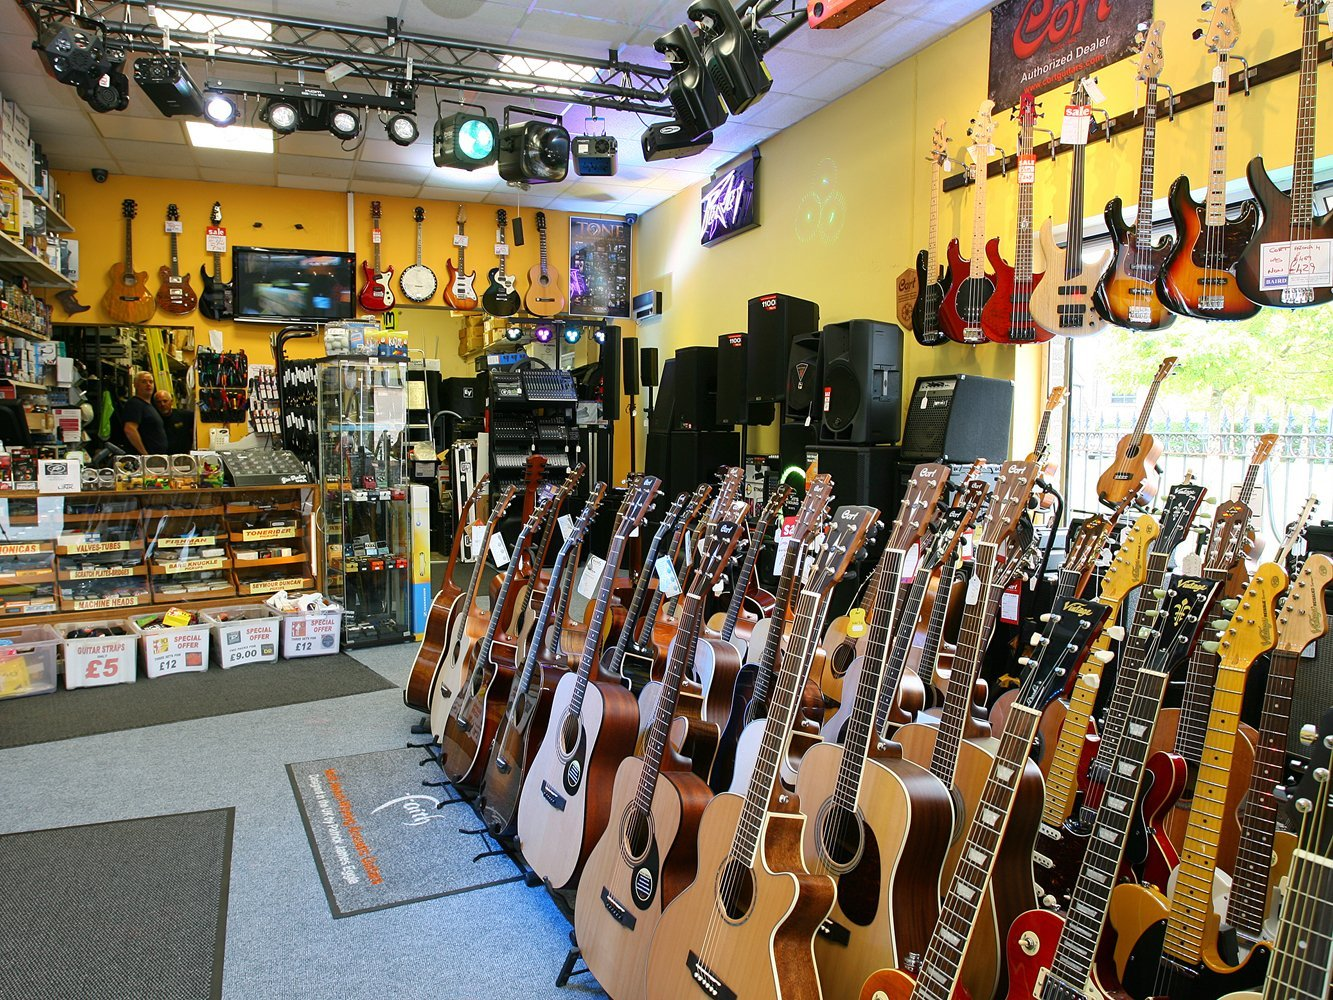 musical instruments inside the store